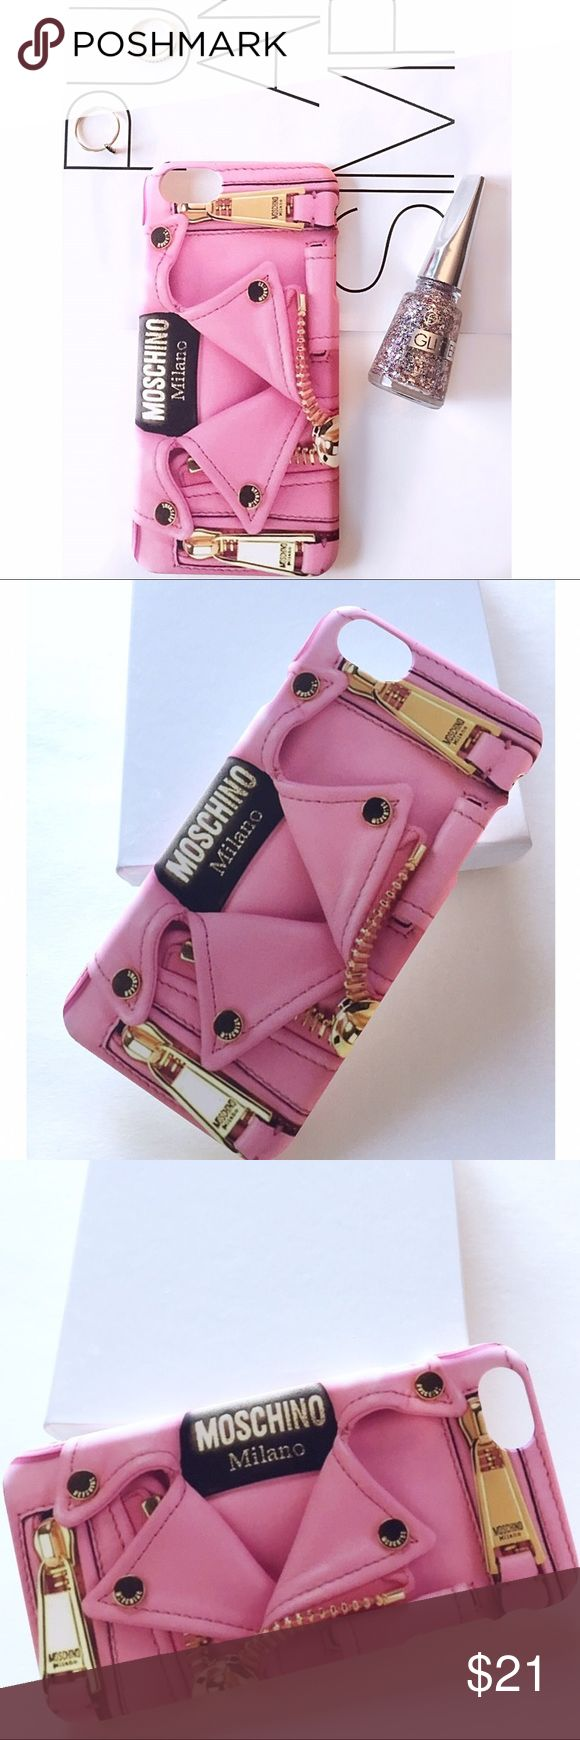 pink moschino phone case iphone 6plus very chic pink moschino phone case for iphone 6 6s plus. Black Bedroom Furniture Sets. Home Design Ideas